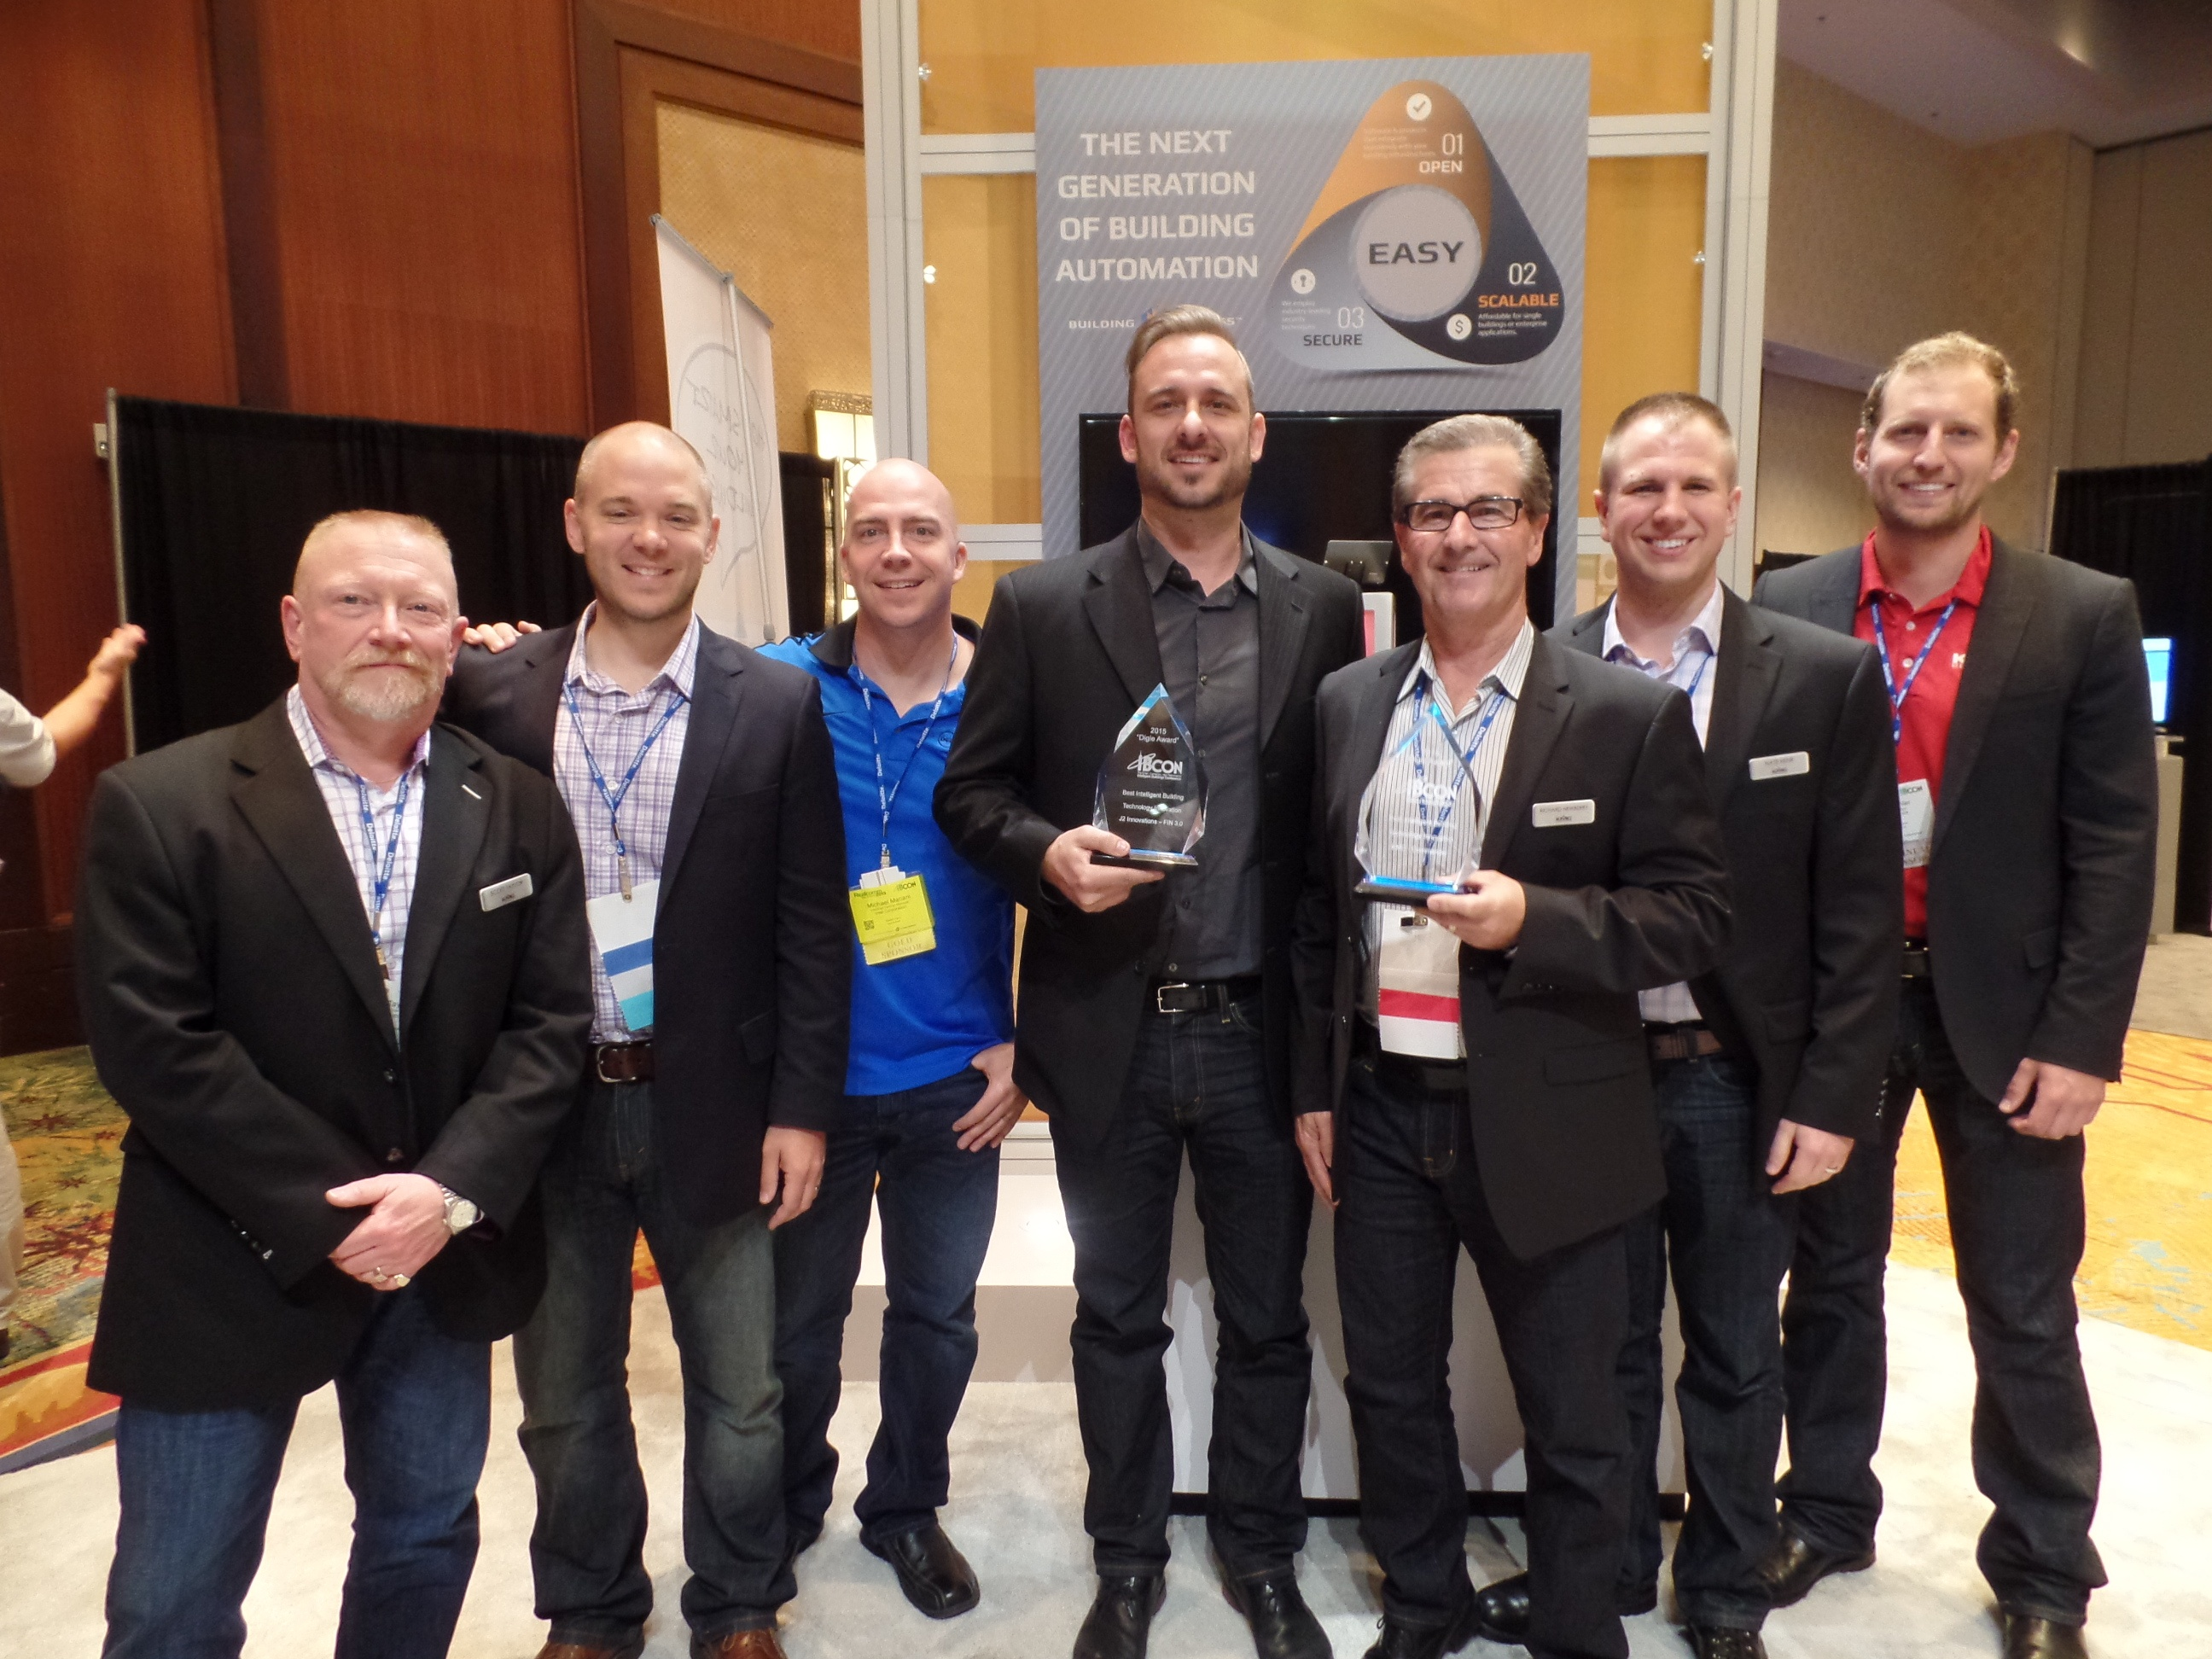 KMC Controls awarded Best Intelligent Building Technology Innovation